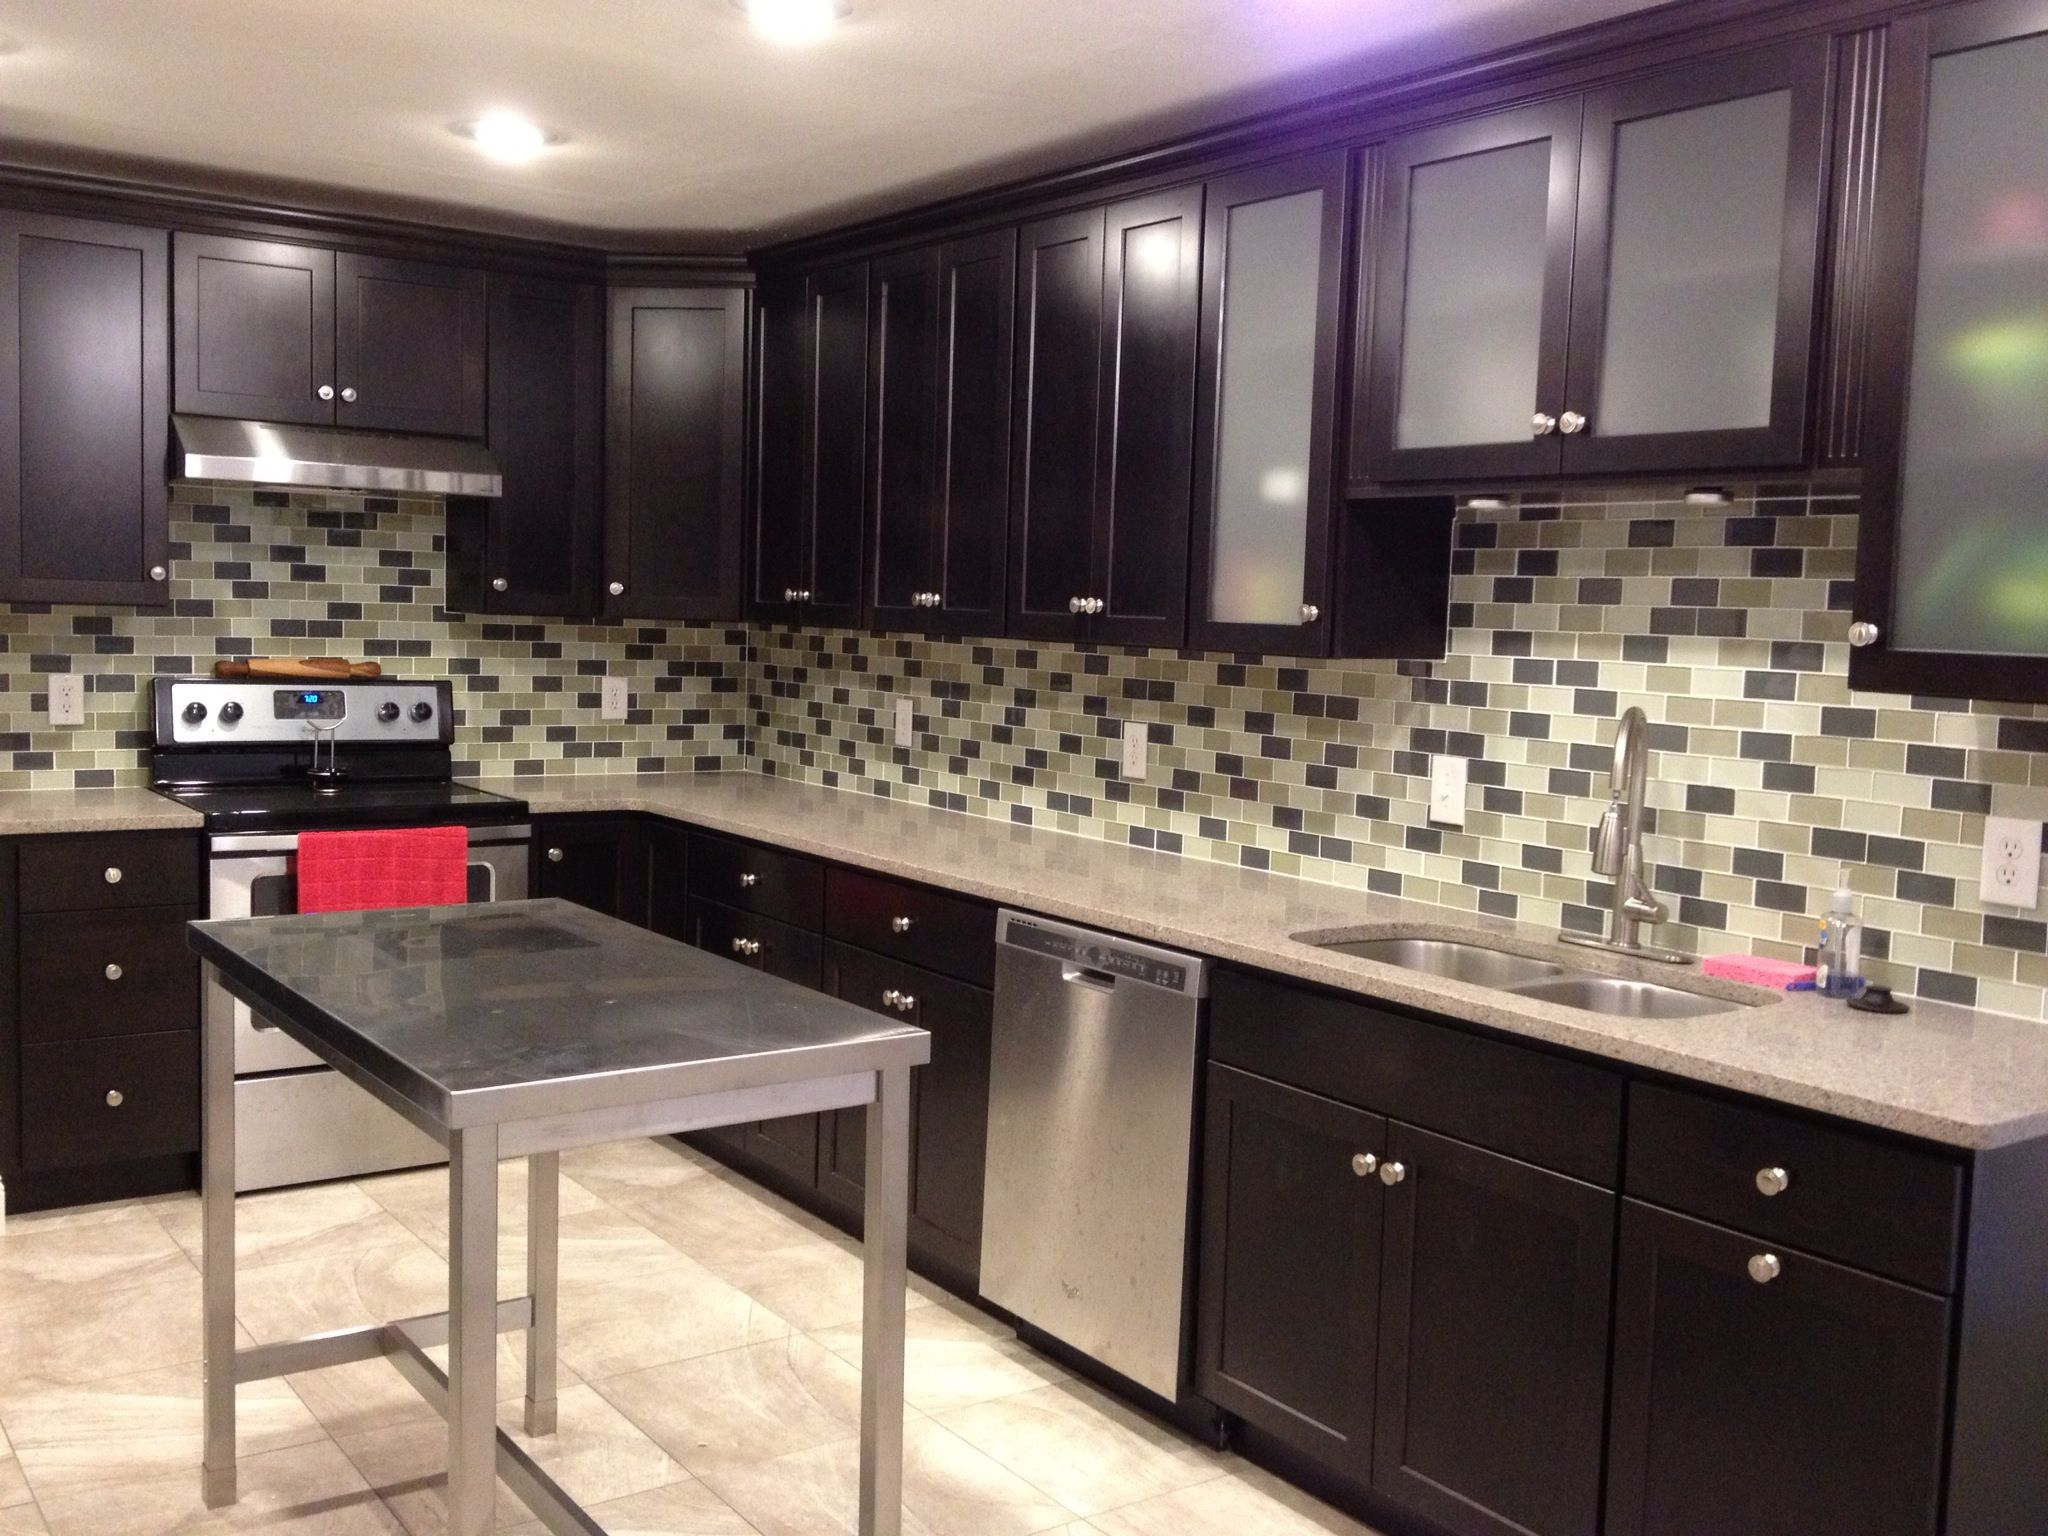 java kitchen cabinets with subway tile backsplash and stainless steel appliances kitchens on kitchen cabinets java id=38611